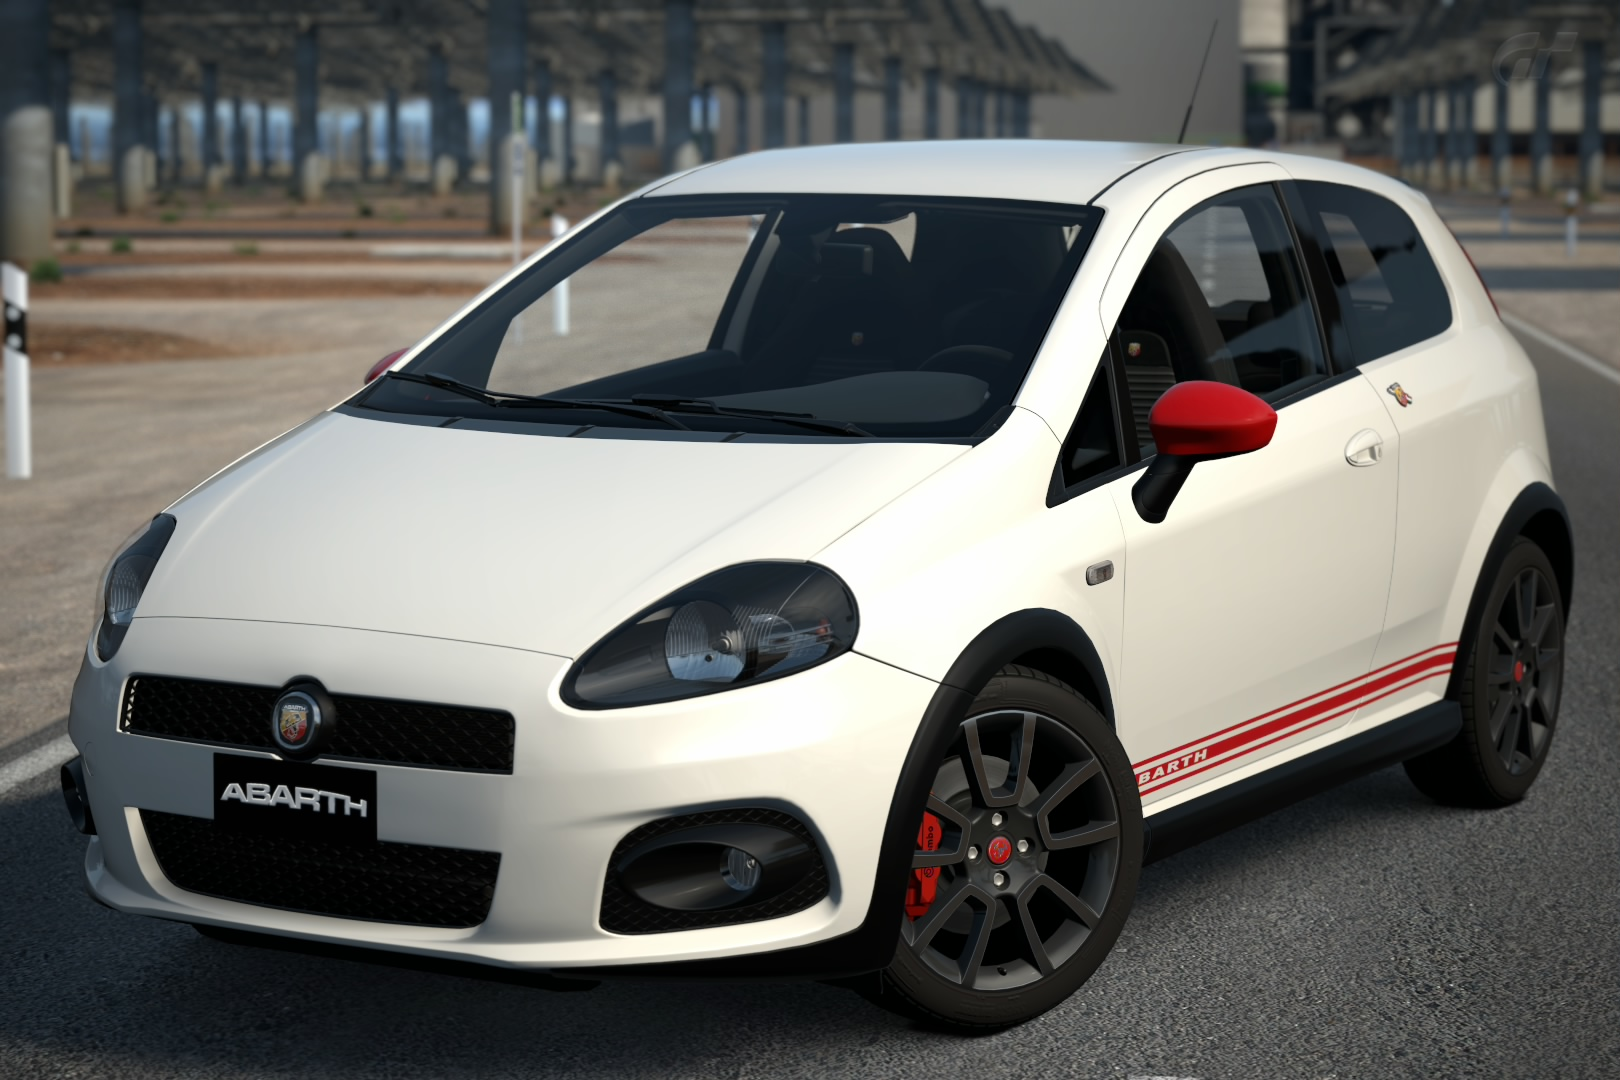 abarth grande punto 39 09 gran turismo wiki fandom. Black Bedroom Furniture Sets. Home Design Ideas